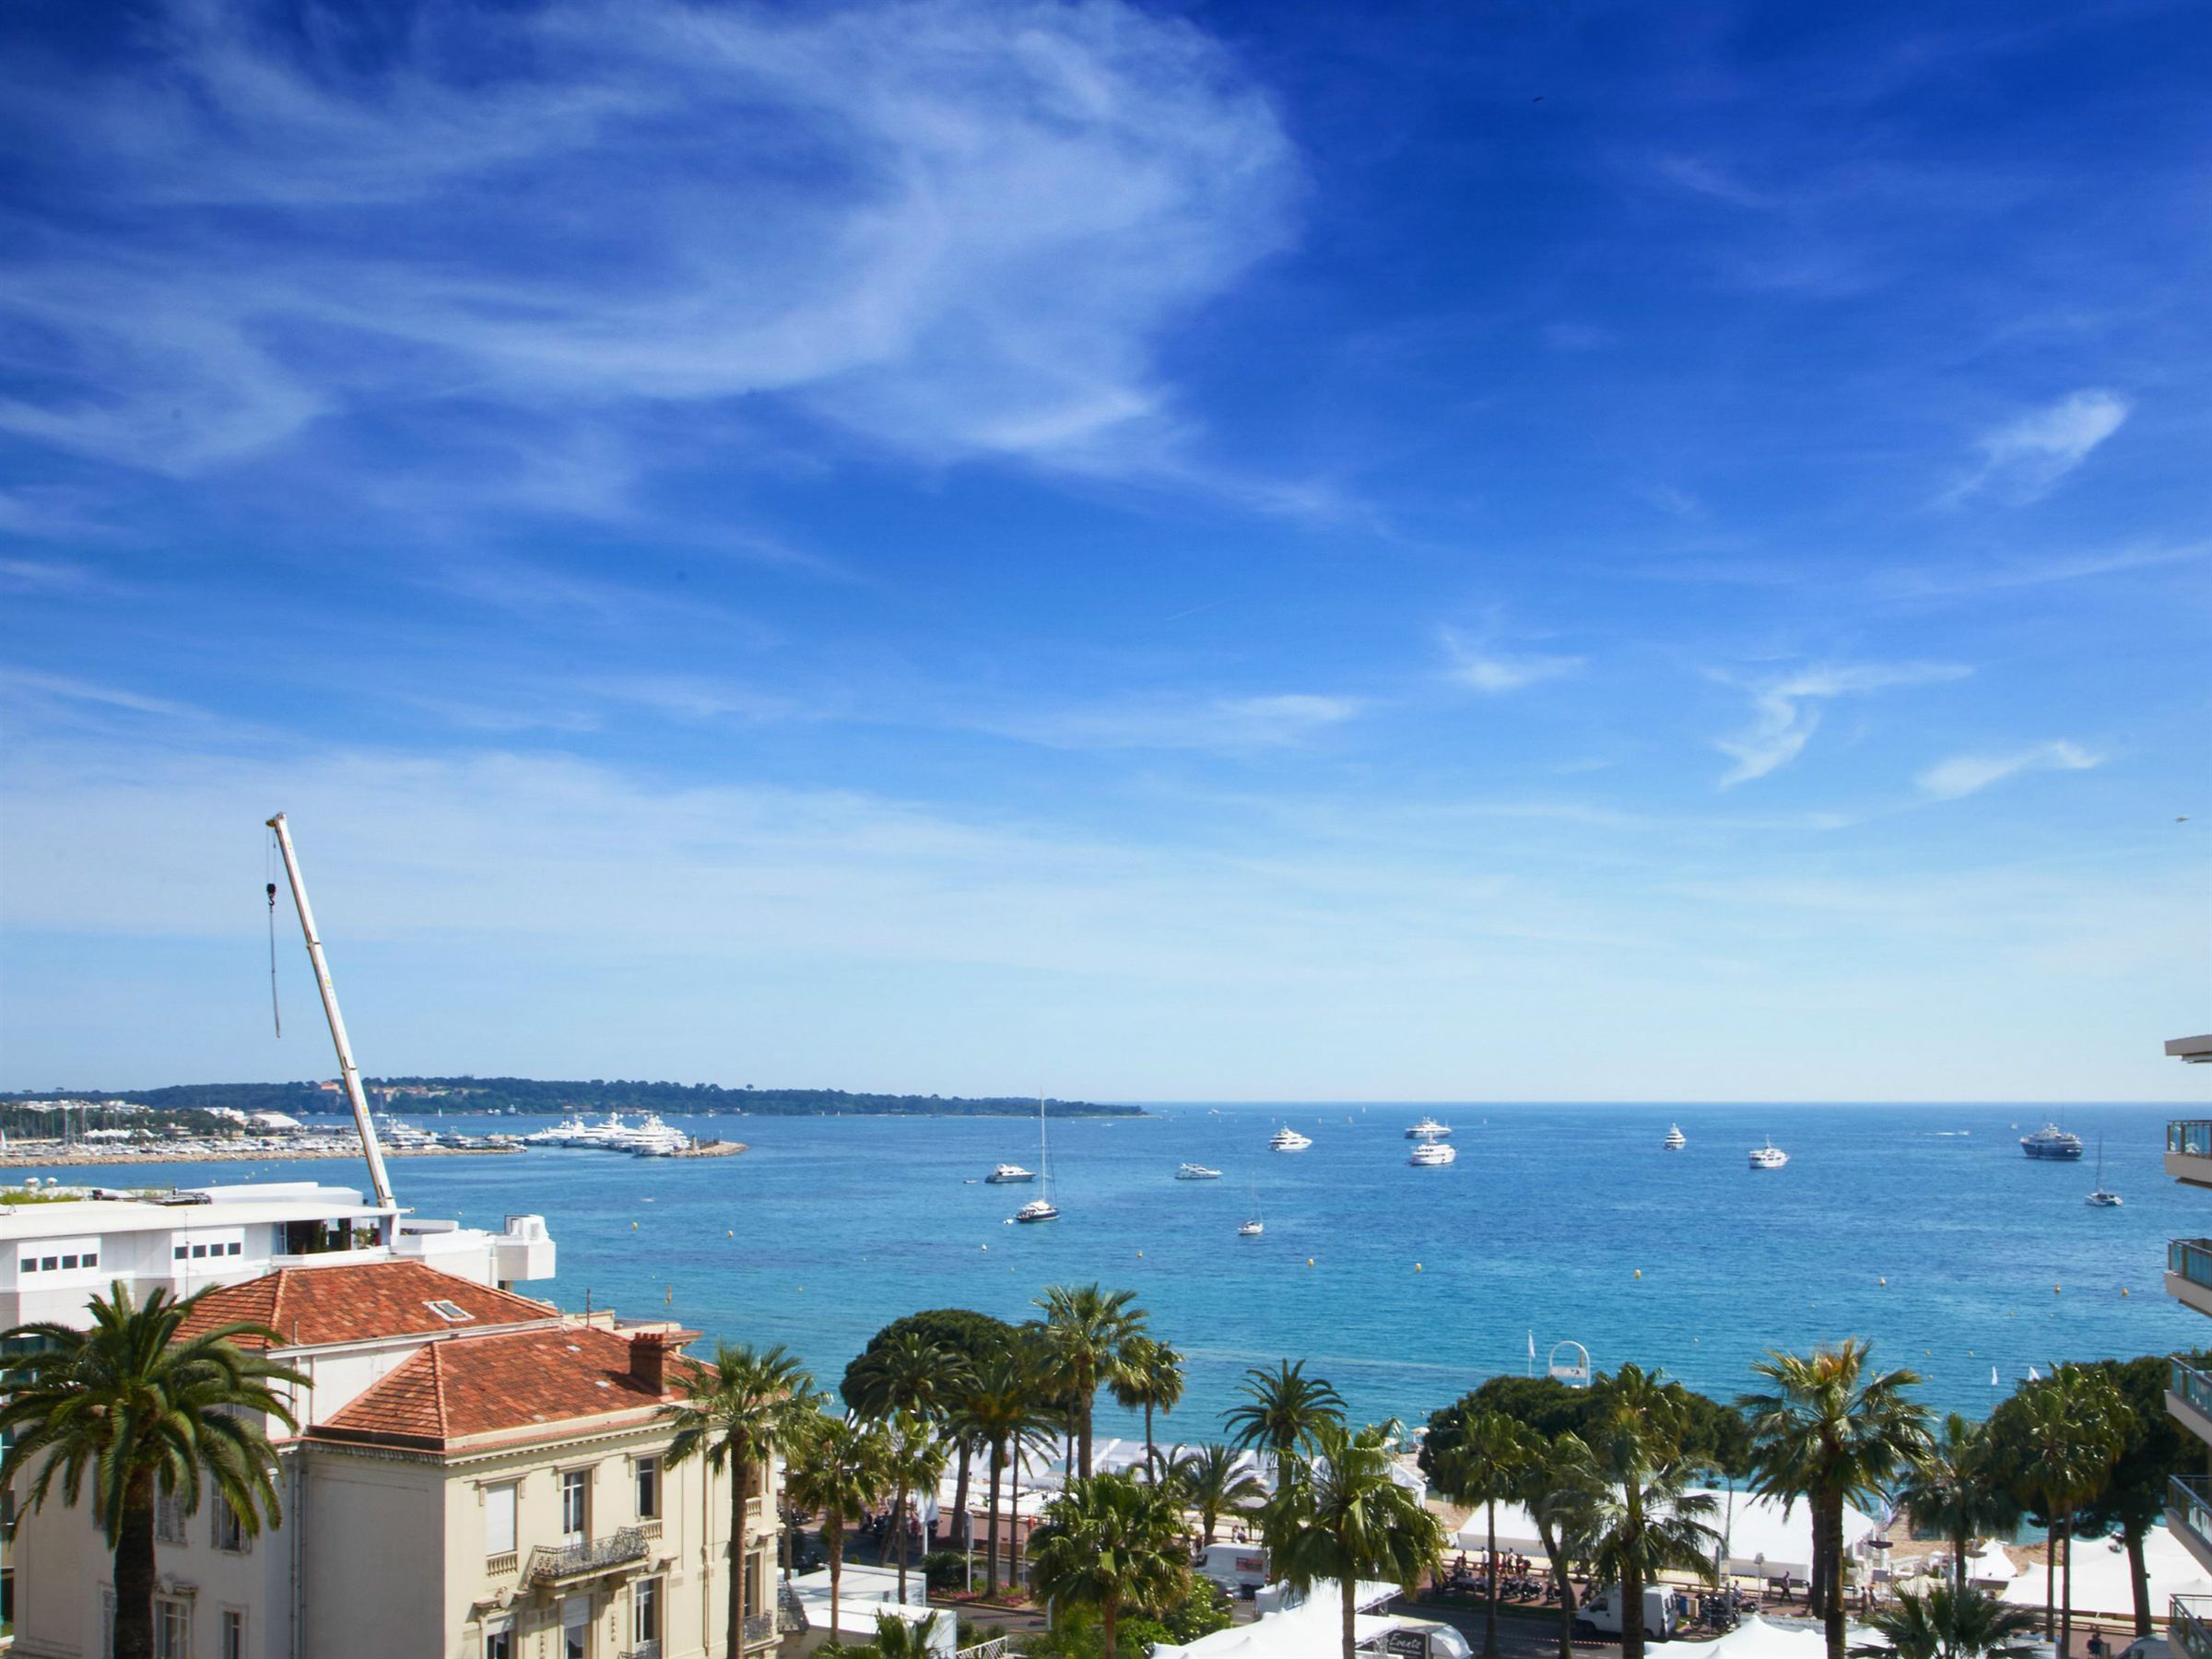 Apartment for Sale at La Croisette - 4 bedroomed apartment with amazing sea views Cannes, Provence-Alpes-Cote D'Azur, 06400 France